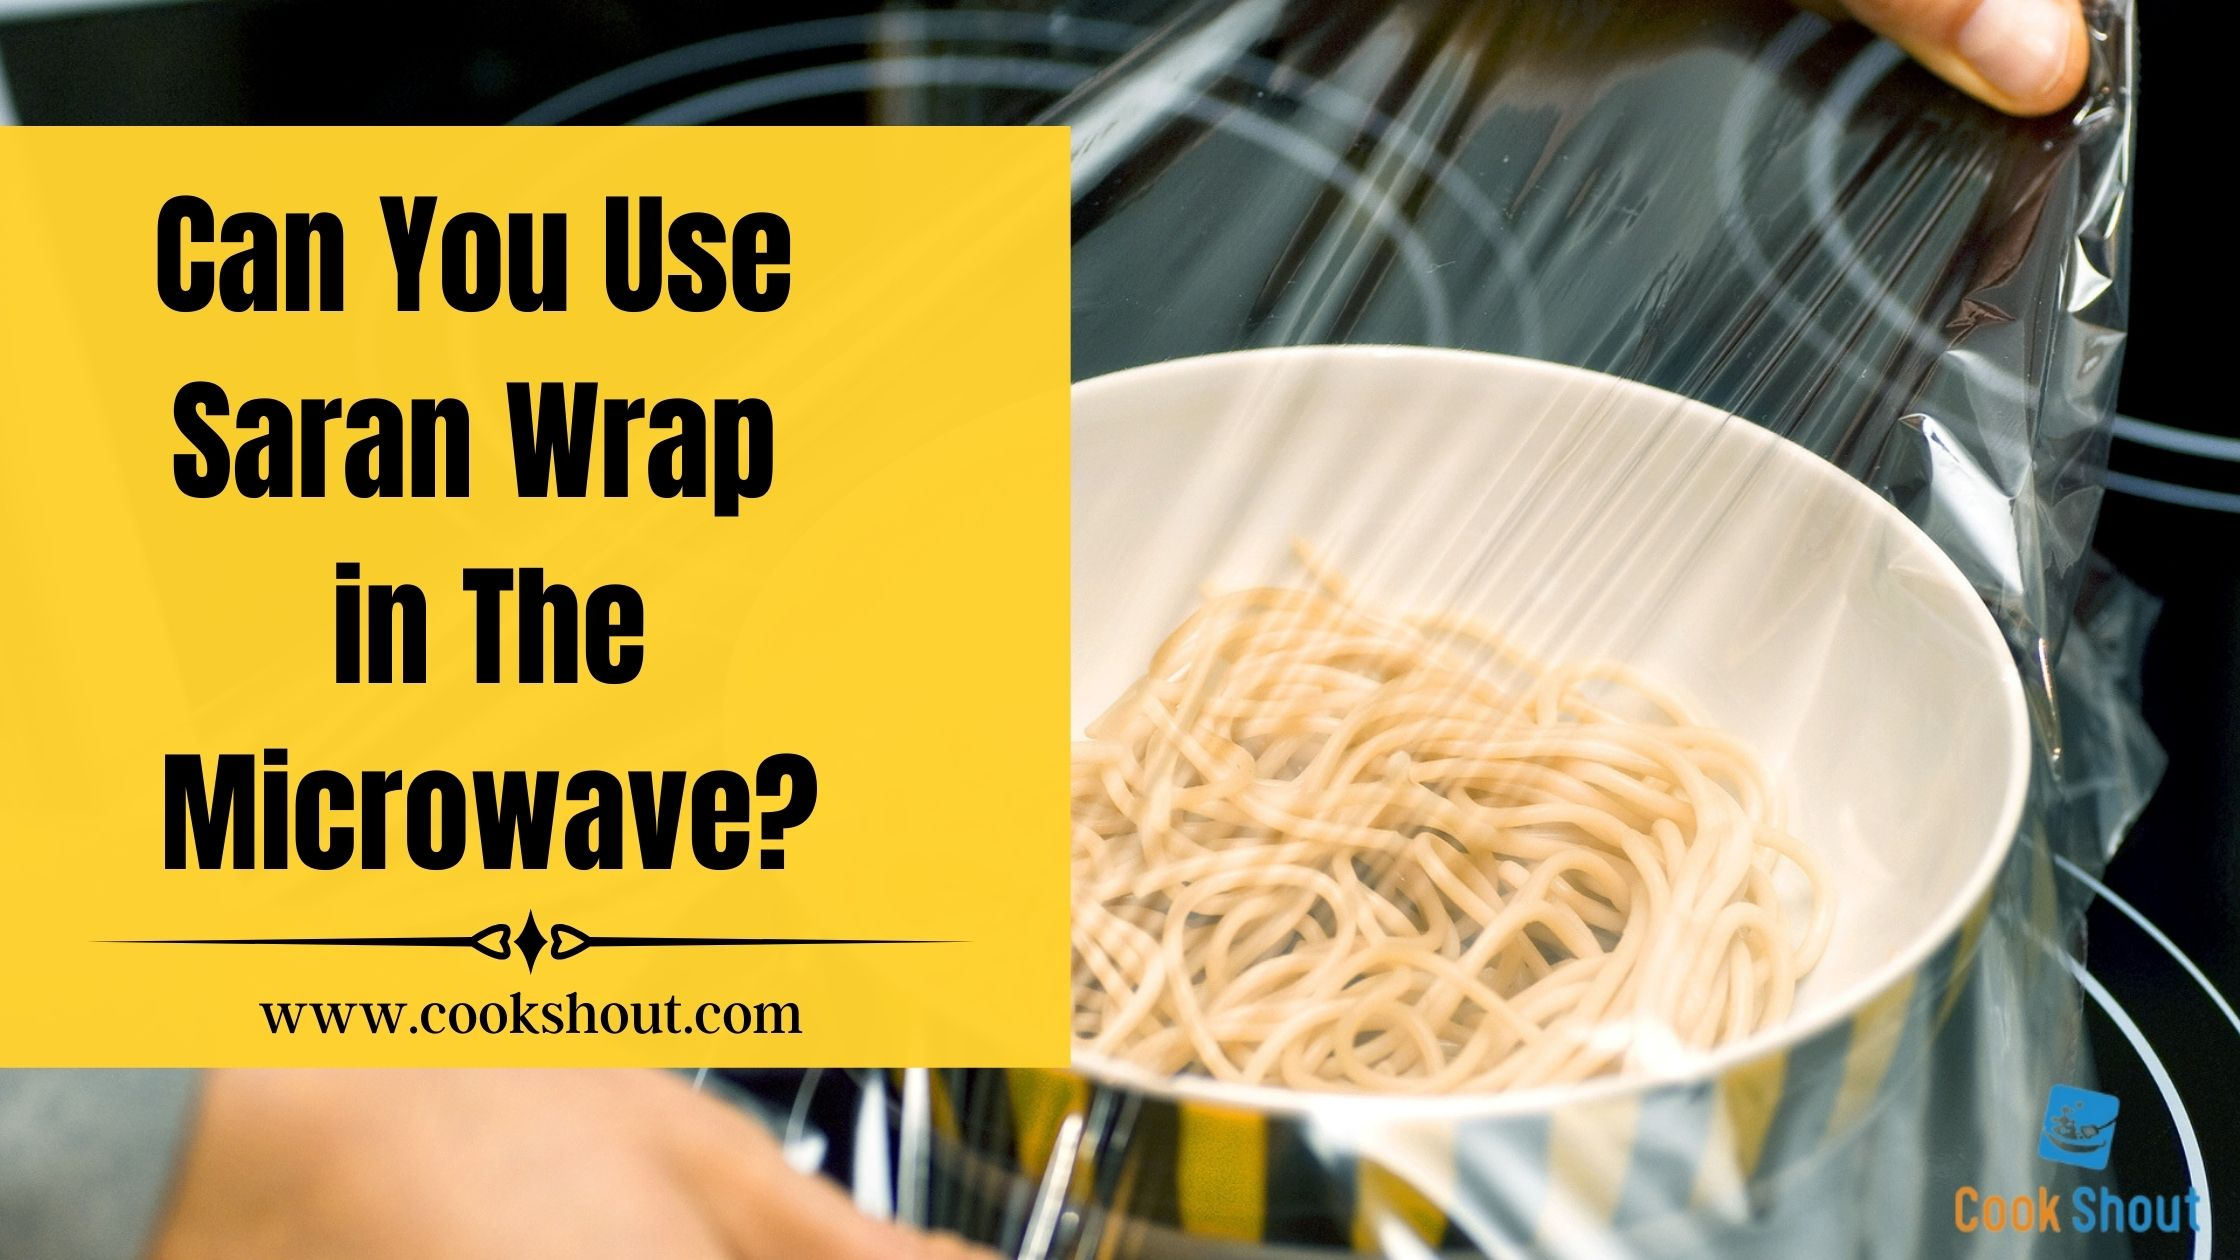 Can You Use Saran Wrap in The Microwave?